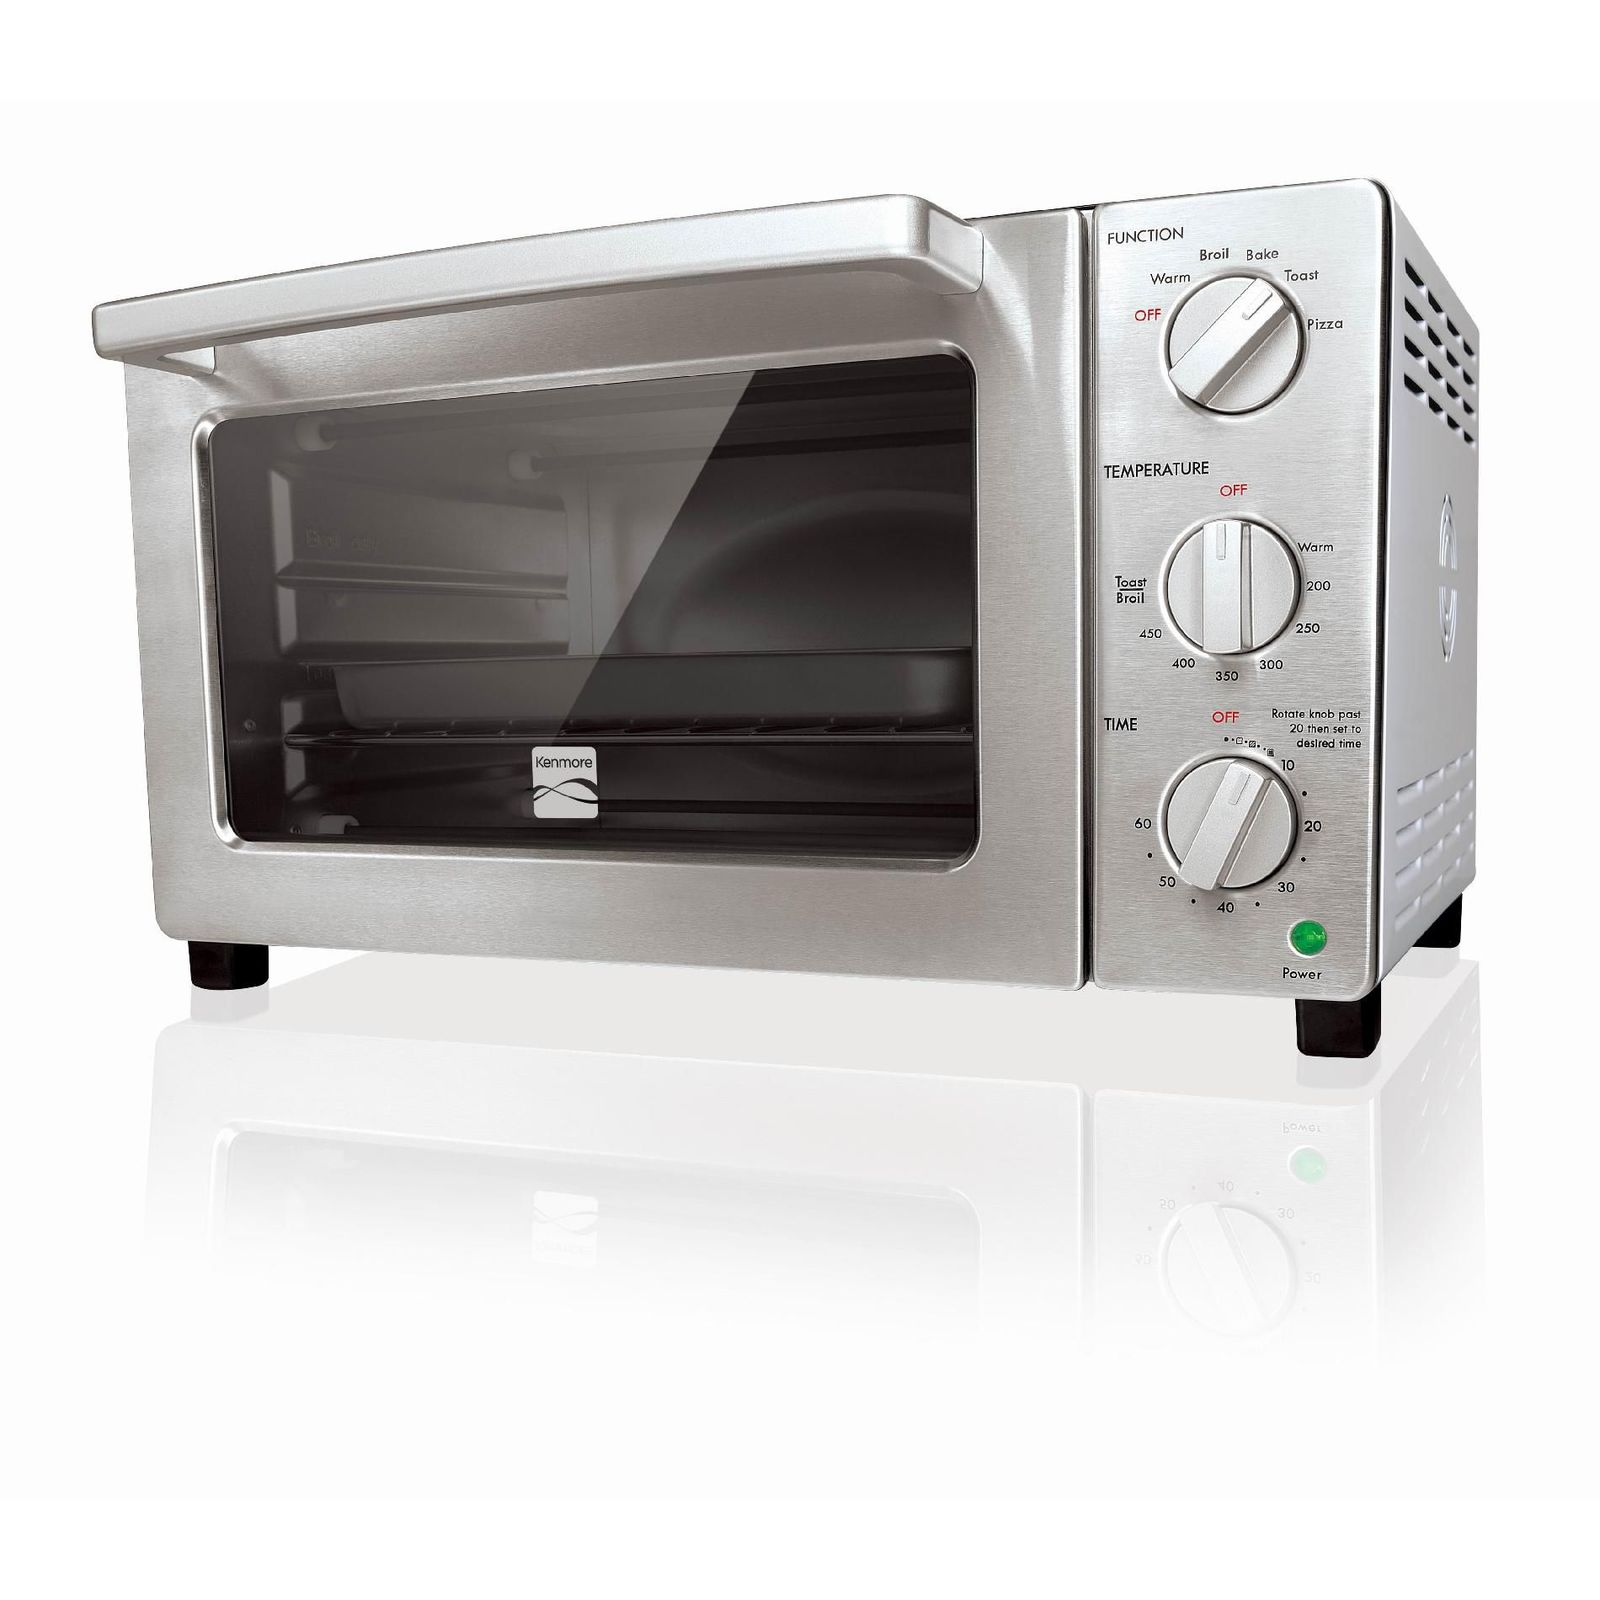 Kenmore 6-Slice Convection Toaster Oven, White